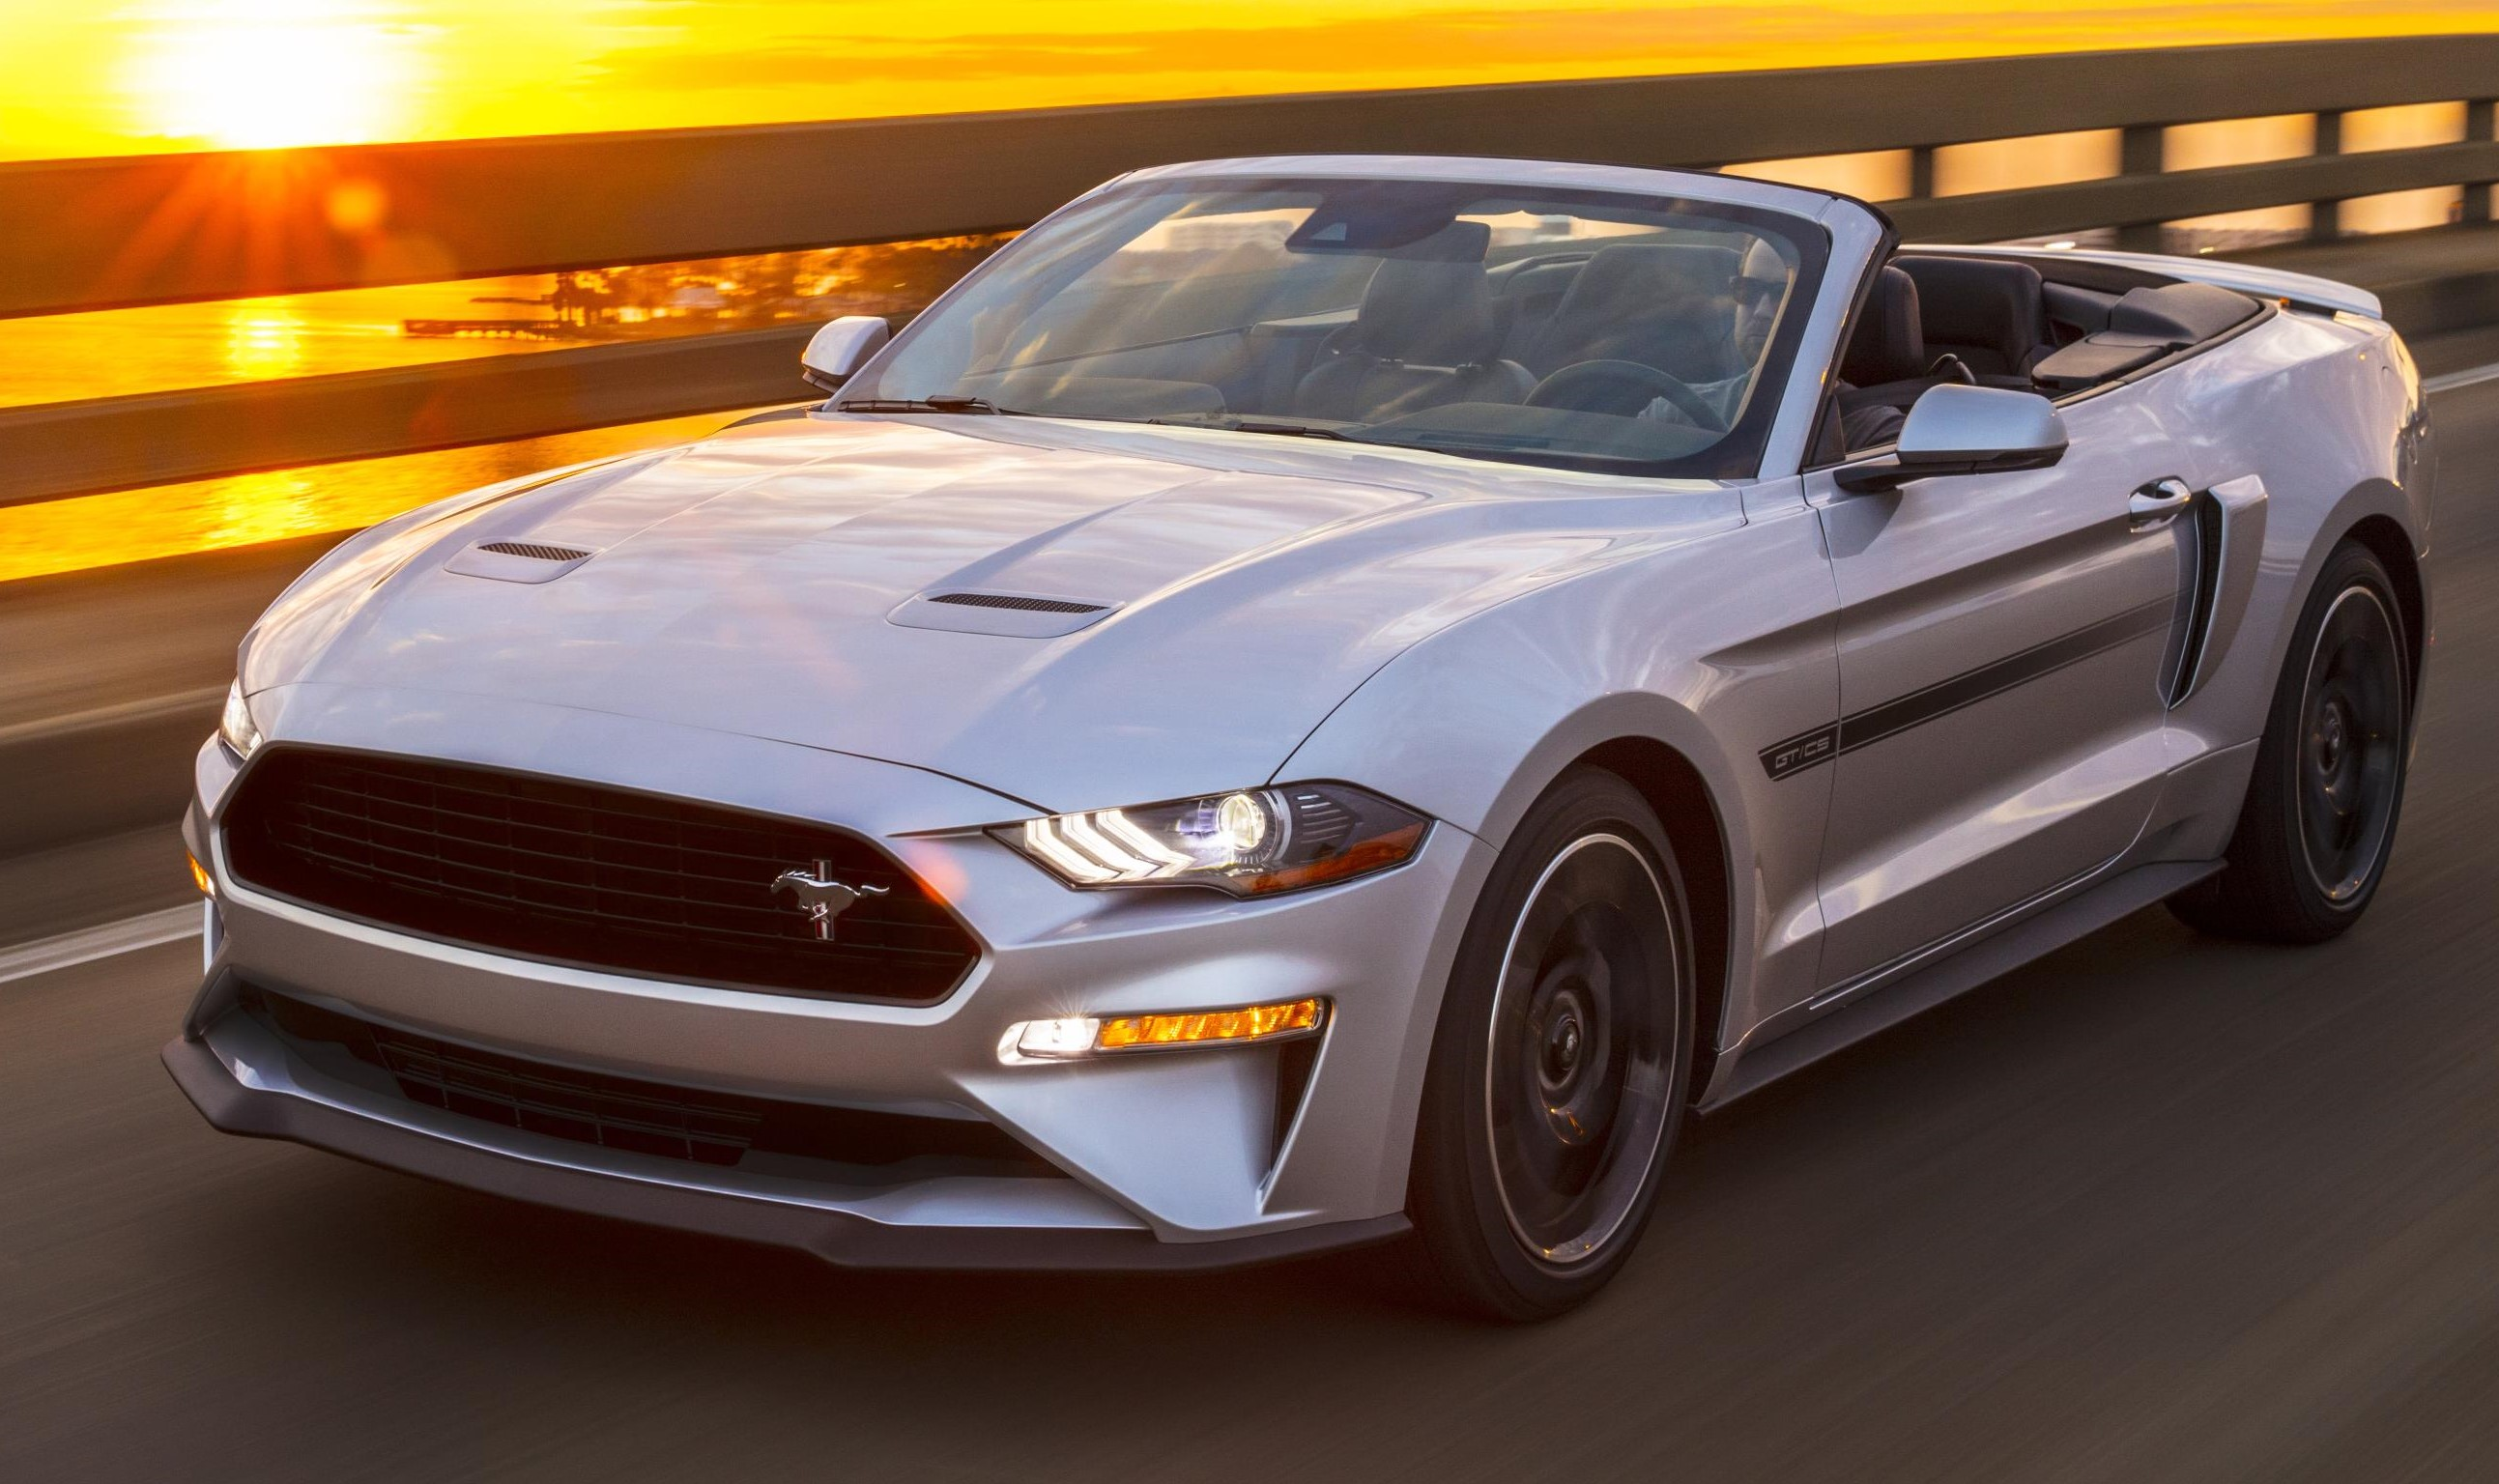 Customized Mustang >> 2019 MUSTANG GT / CS - myAutoWorld.com